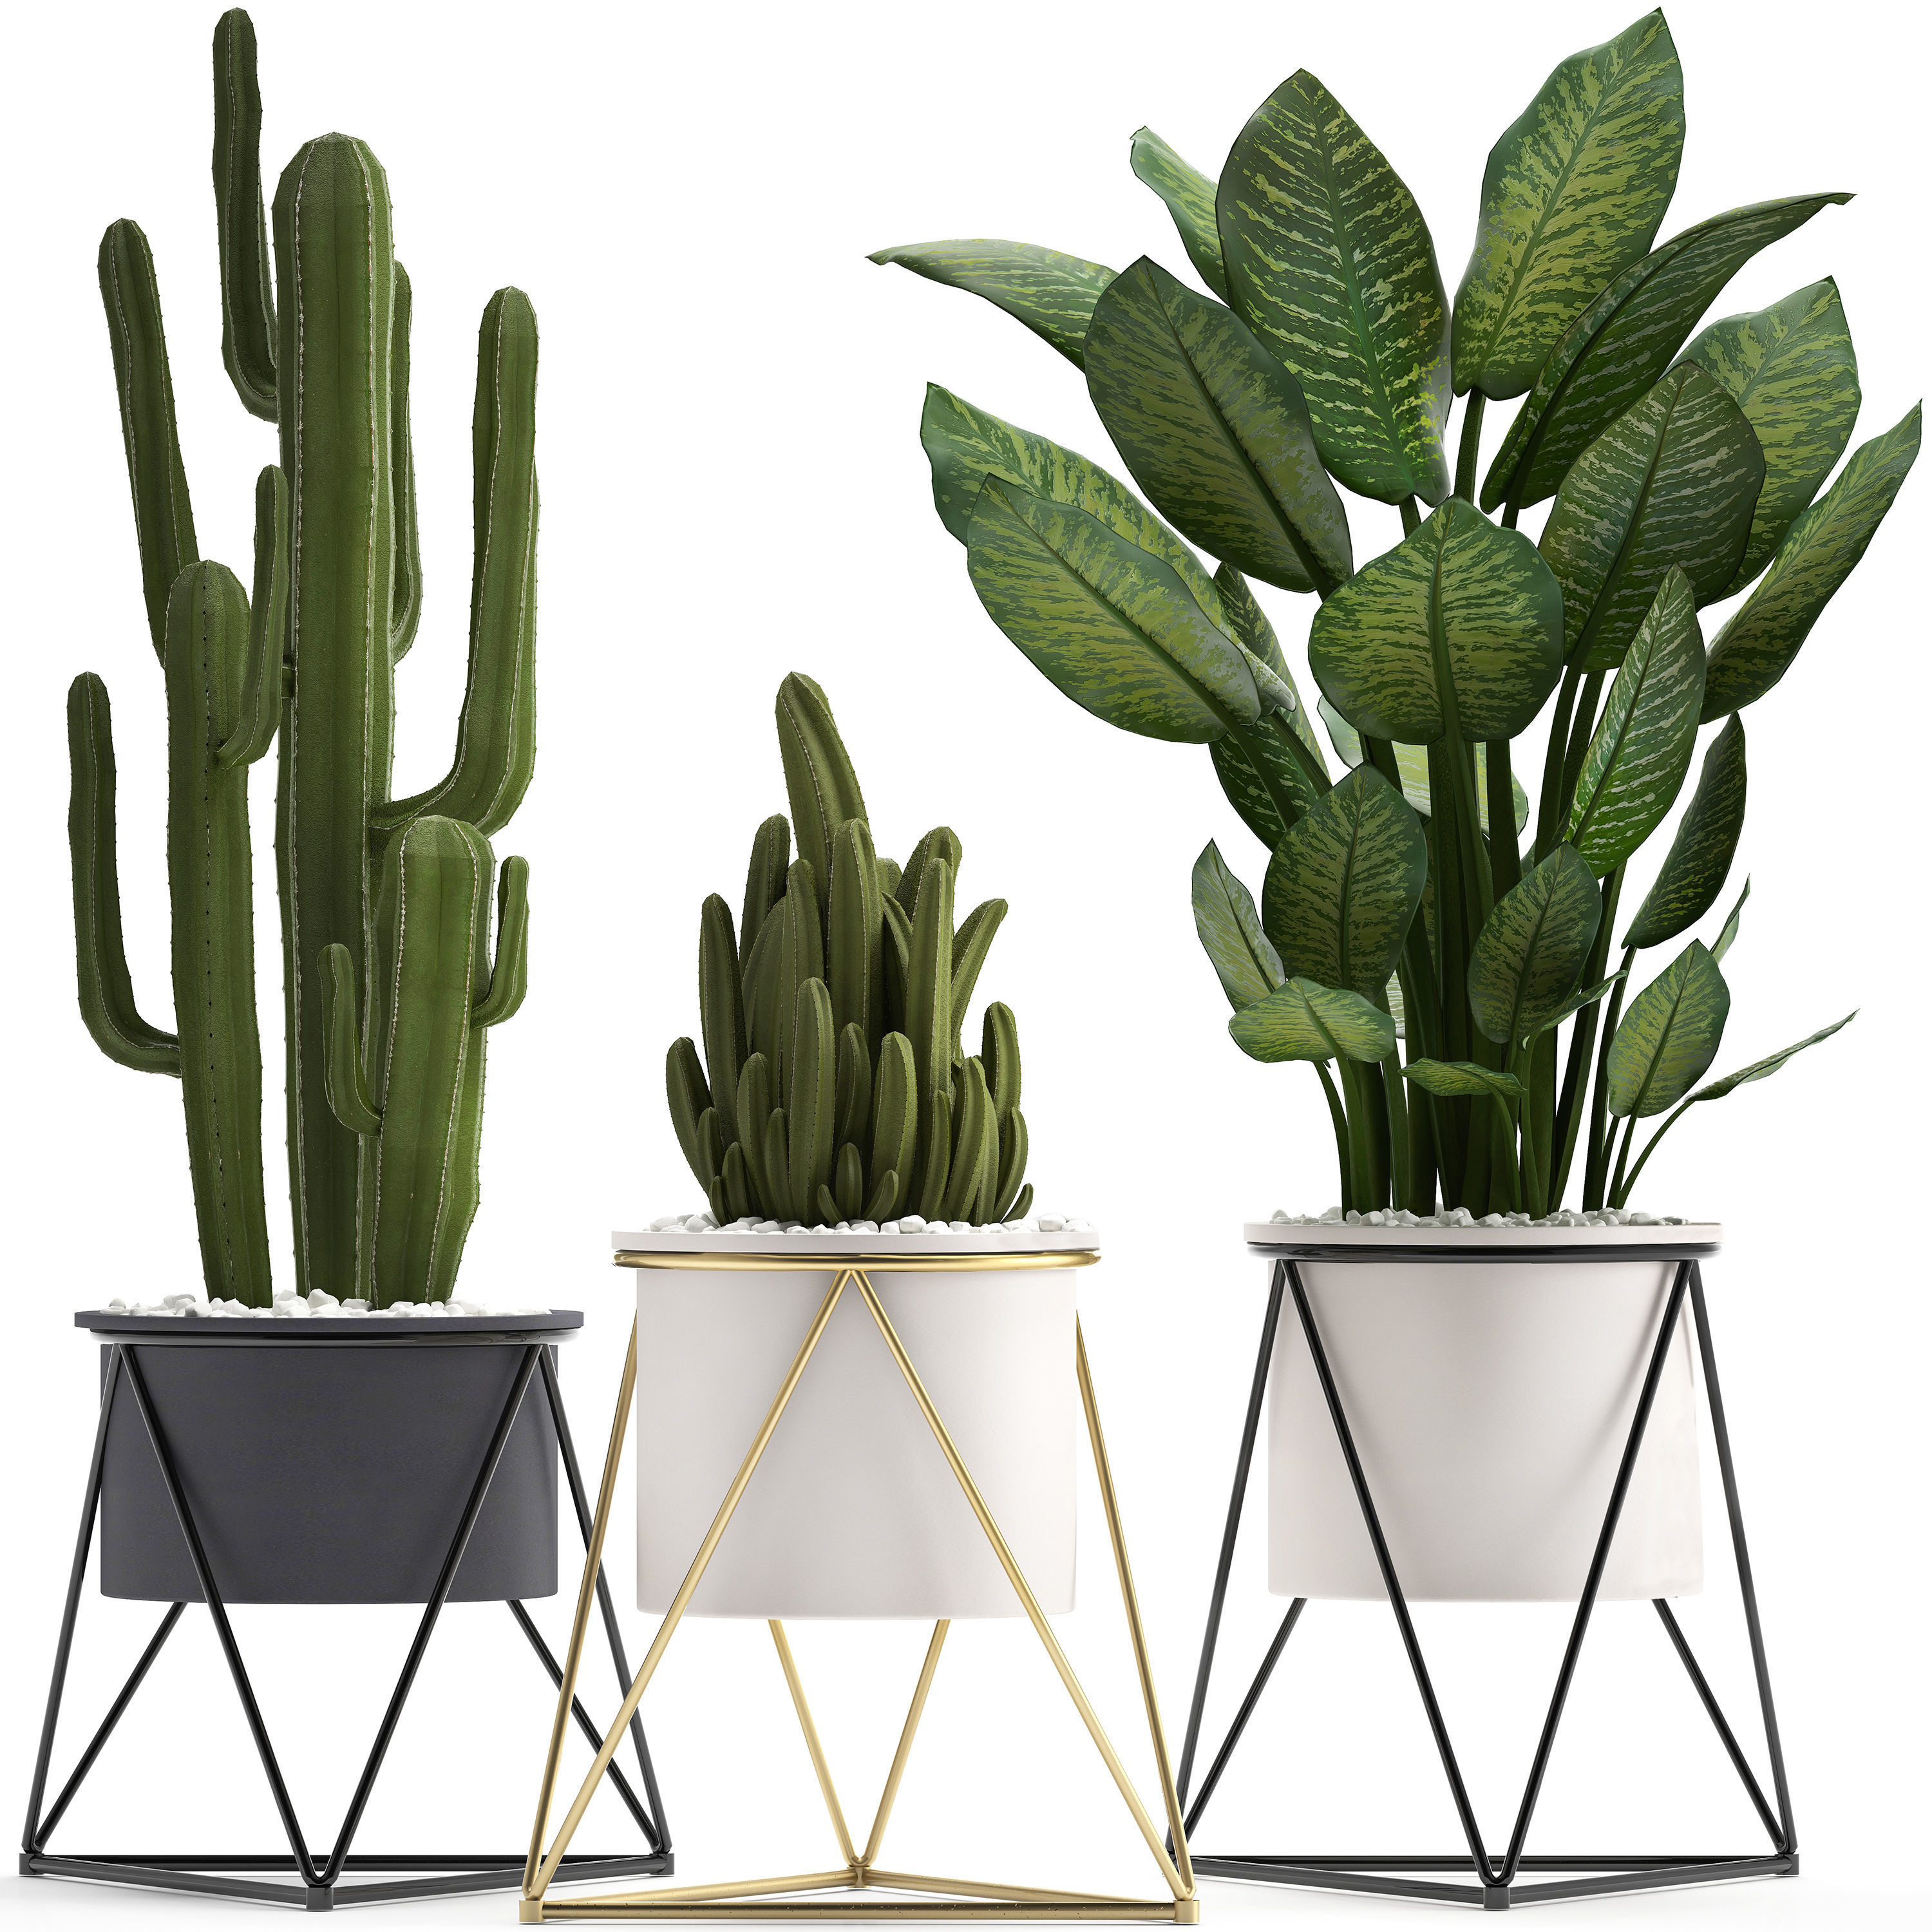 Collection of ornamental plants cactus